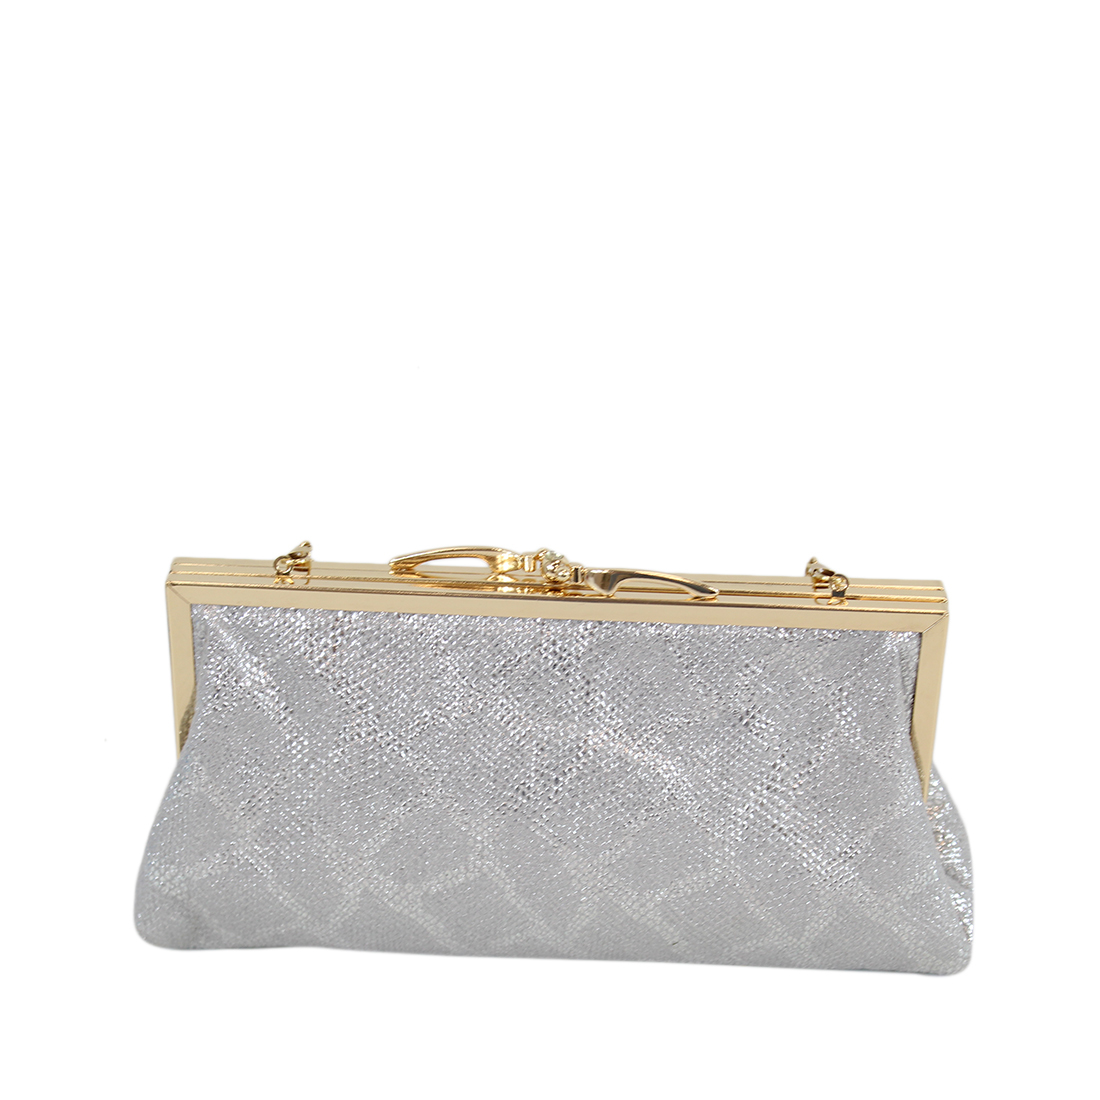 Shiny soft clutch purse with gold and diamond opener